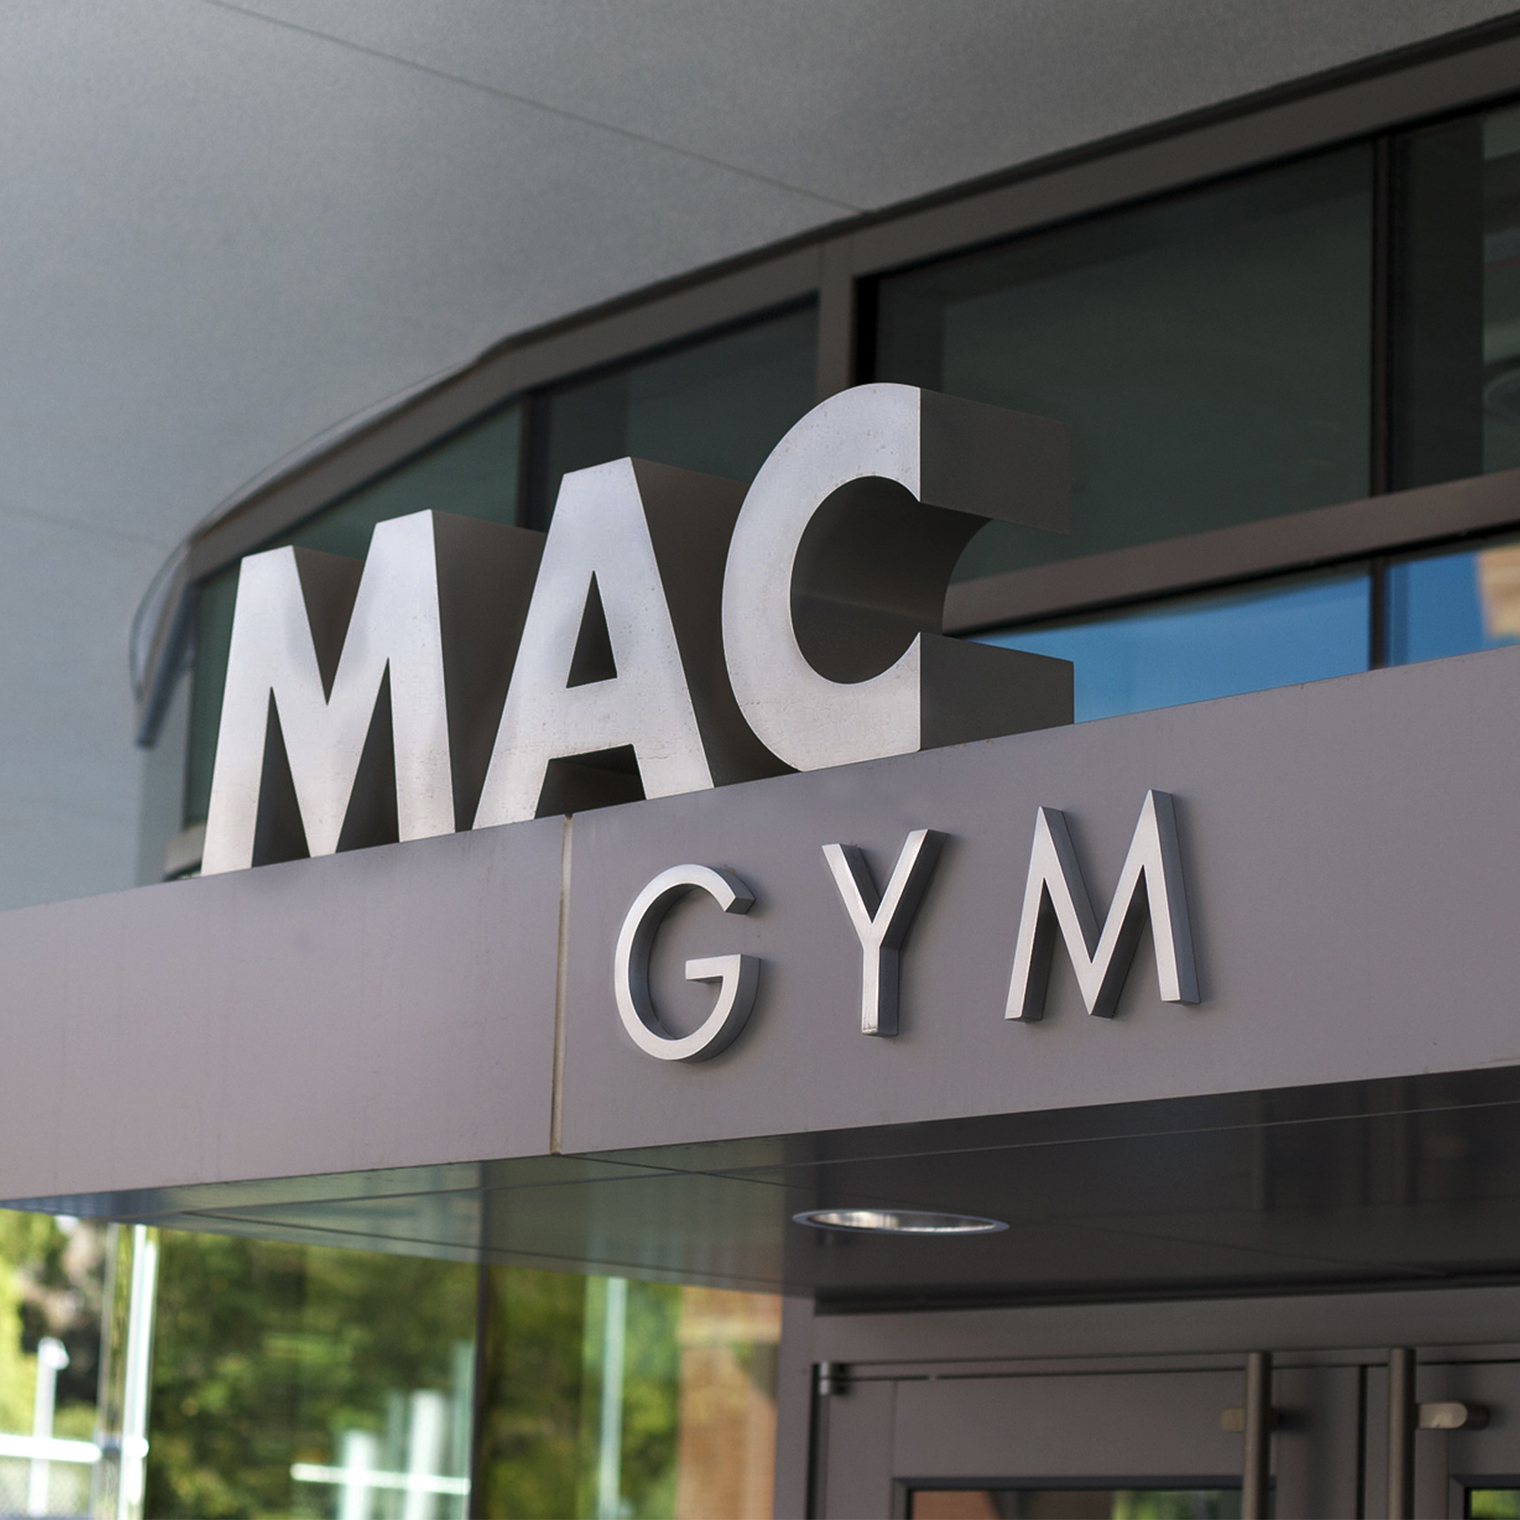 Close up detail of an Entrance sign for Gym at a University